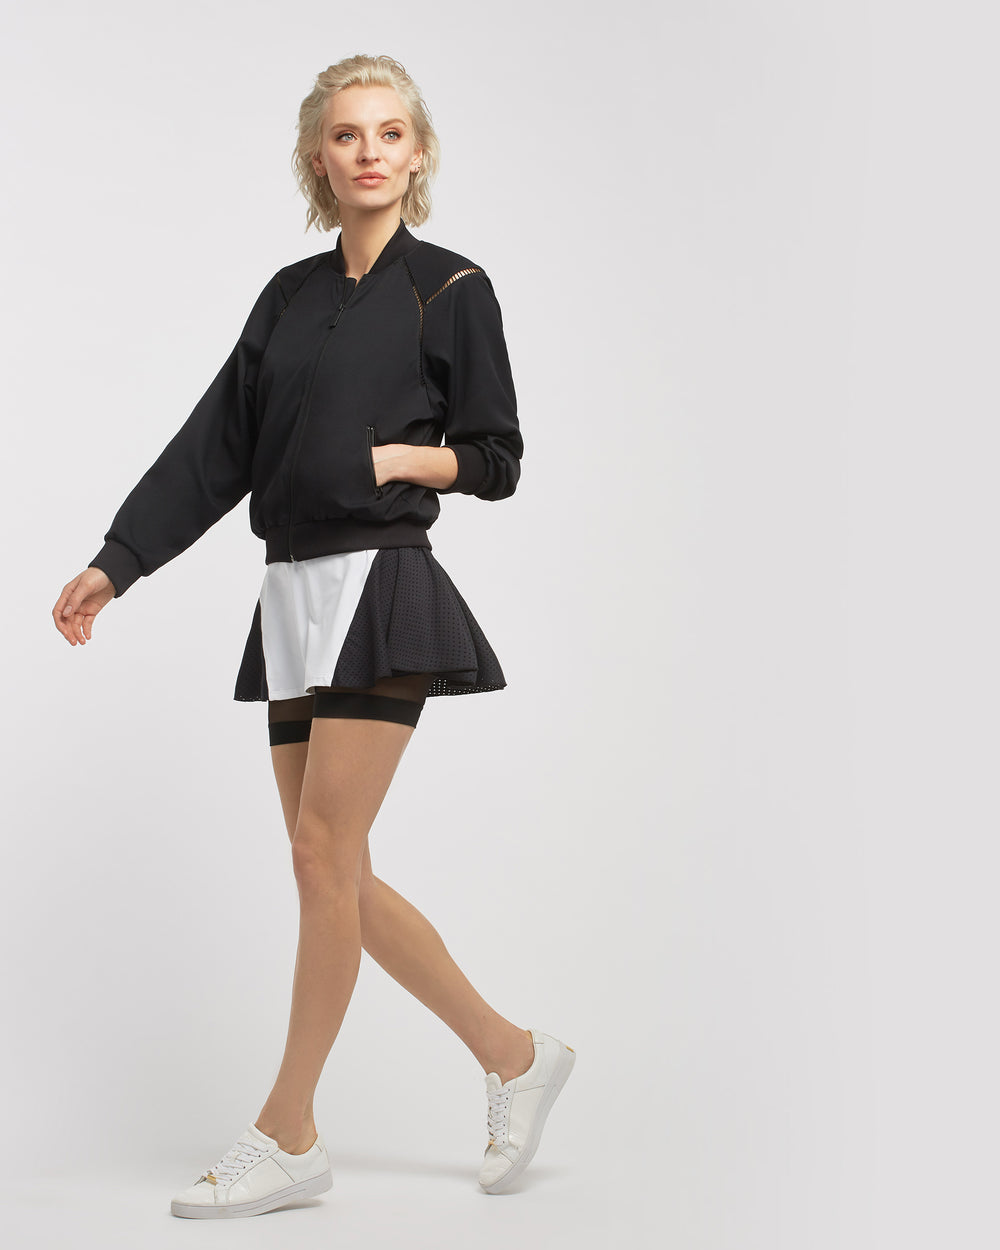 1-Love Tennis Jacket - Black